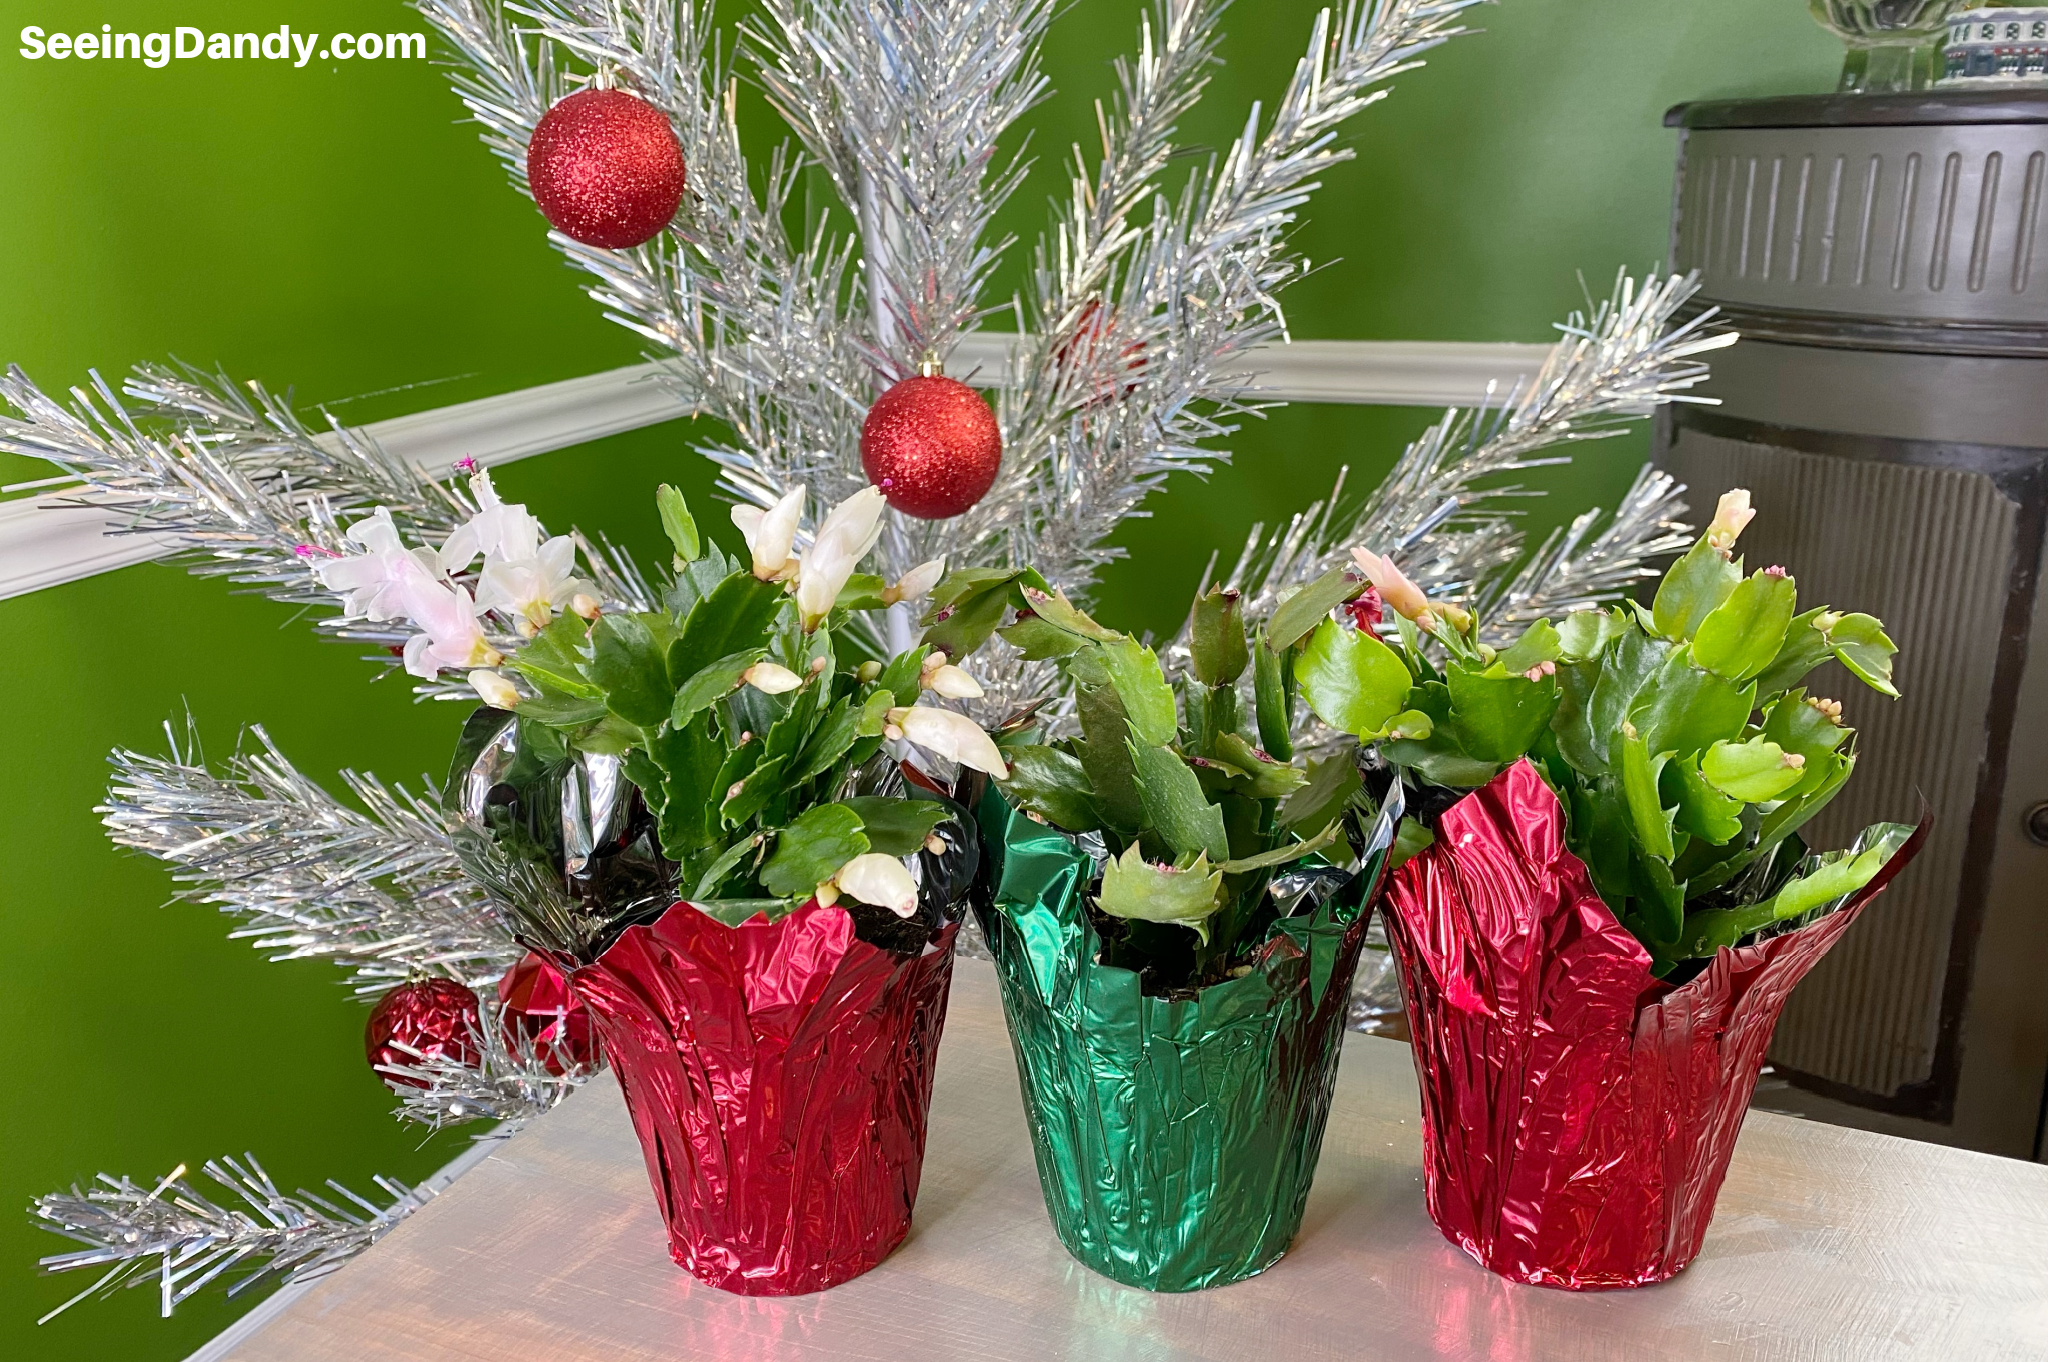 christmas cacti, trader joes plants, vintage christmas tree, farmhouse style dining room, gift idea, holiday decorations